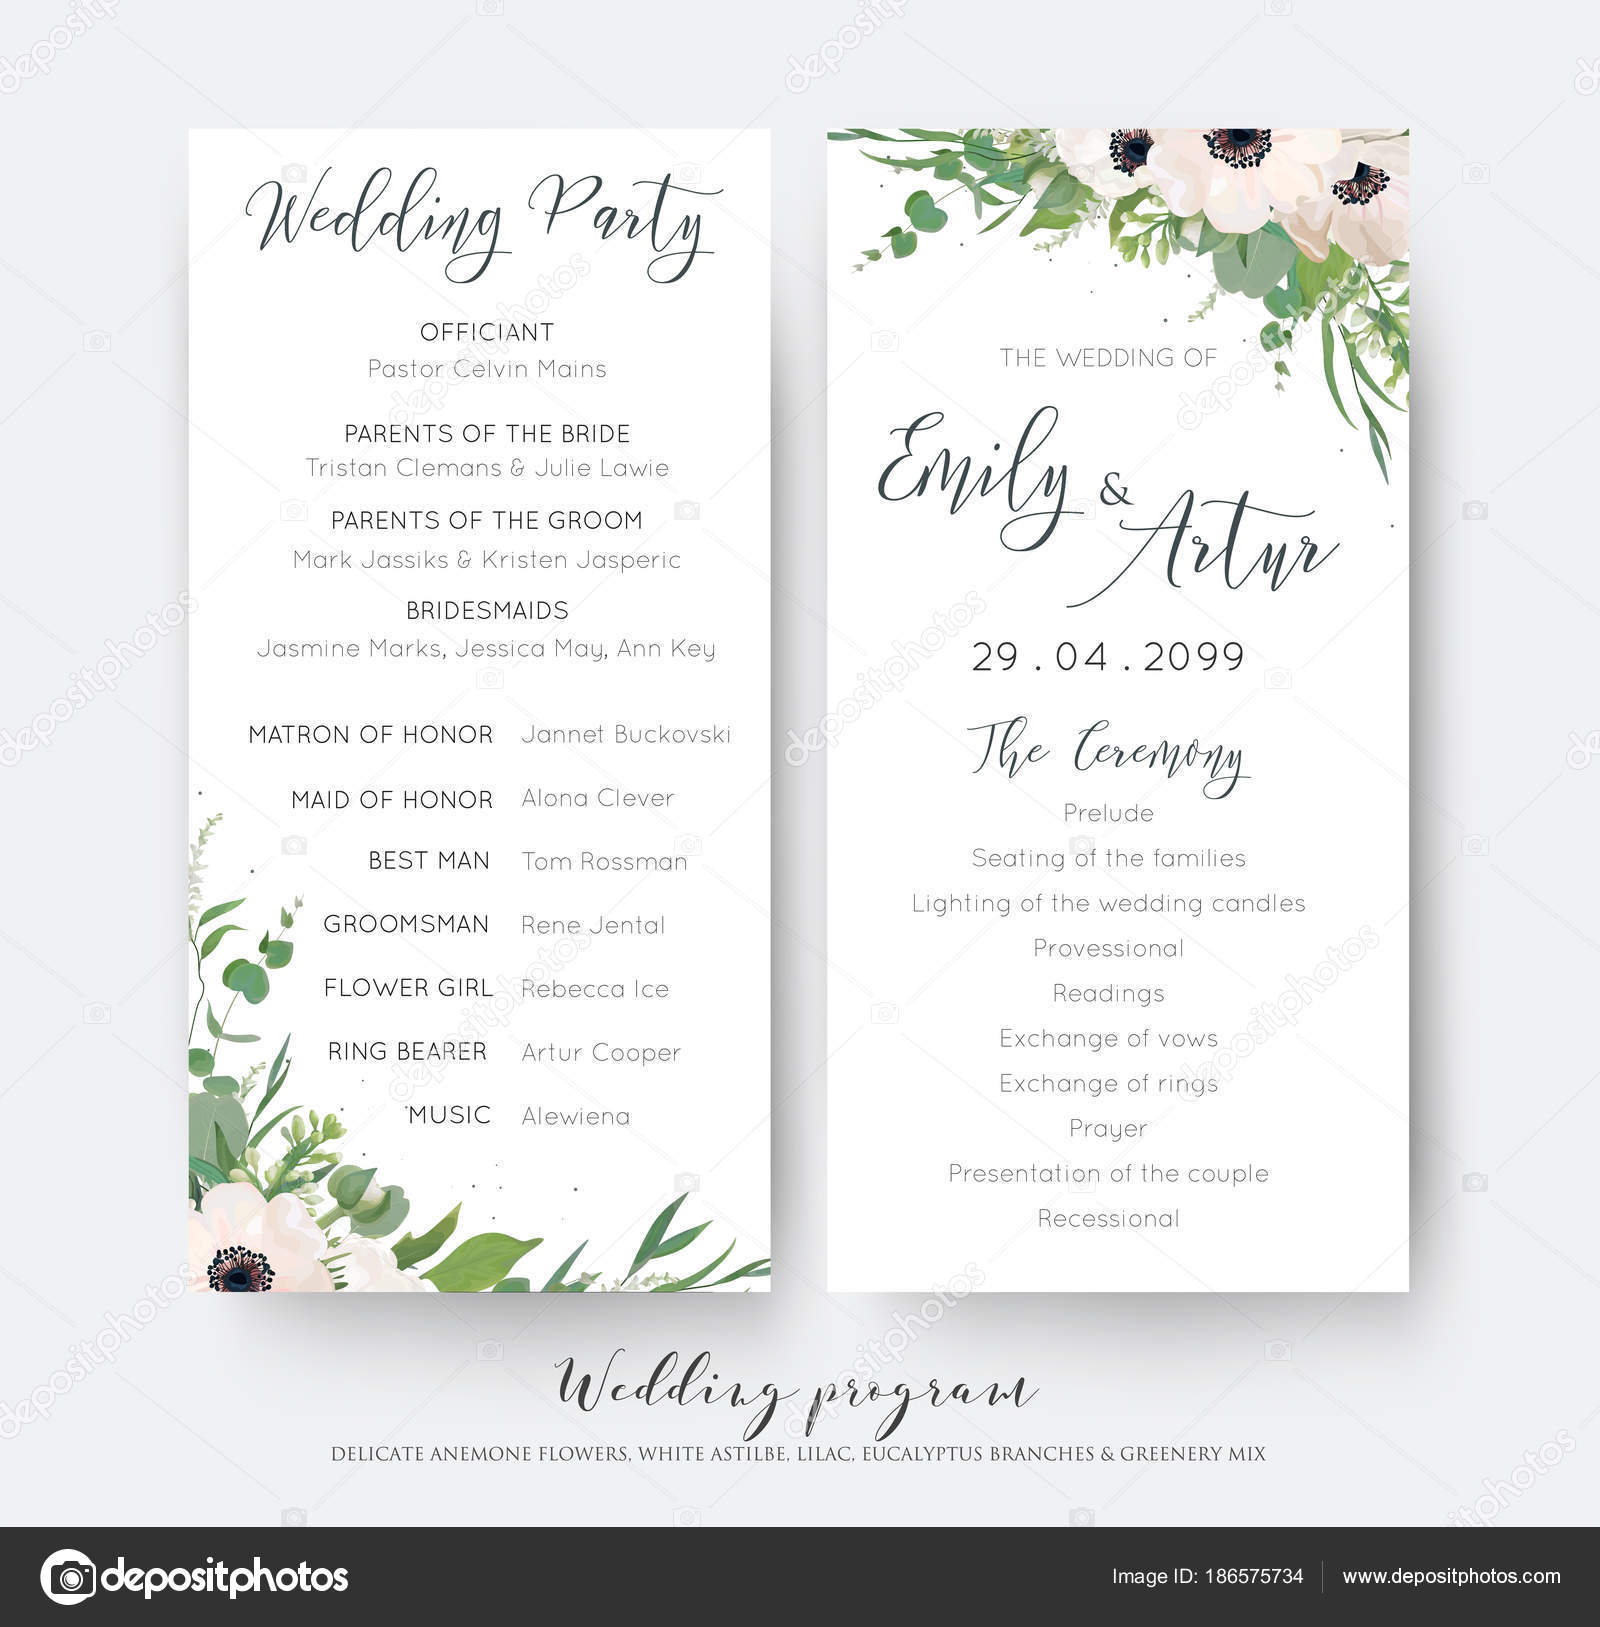 Wedding Ceremony And Party Program Card Elegant Design With